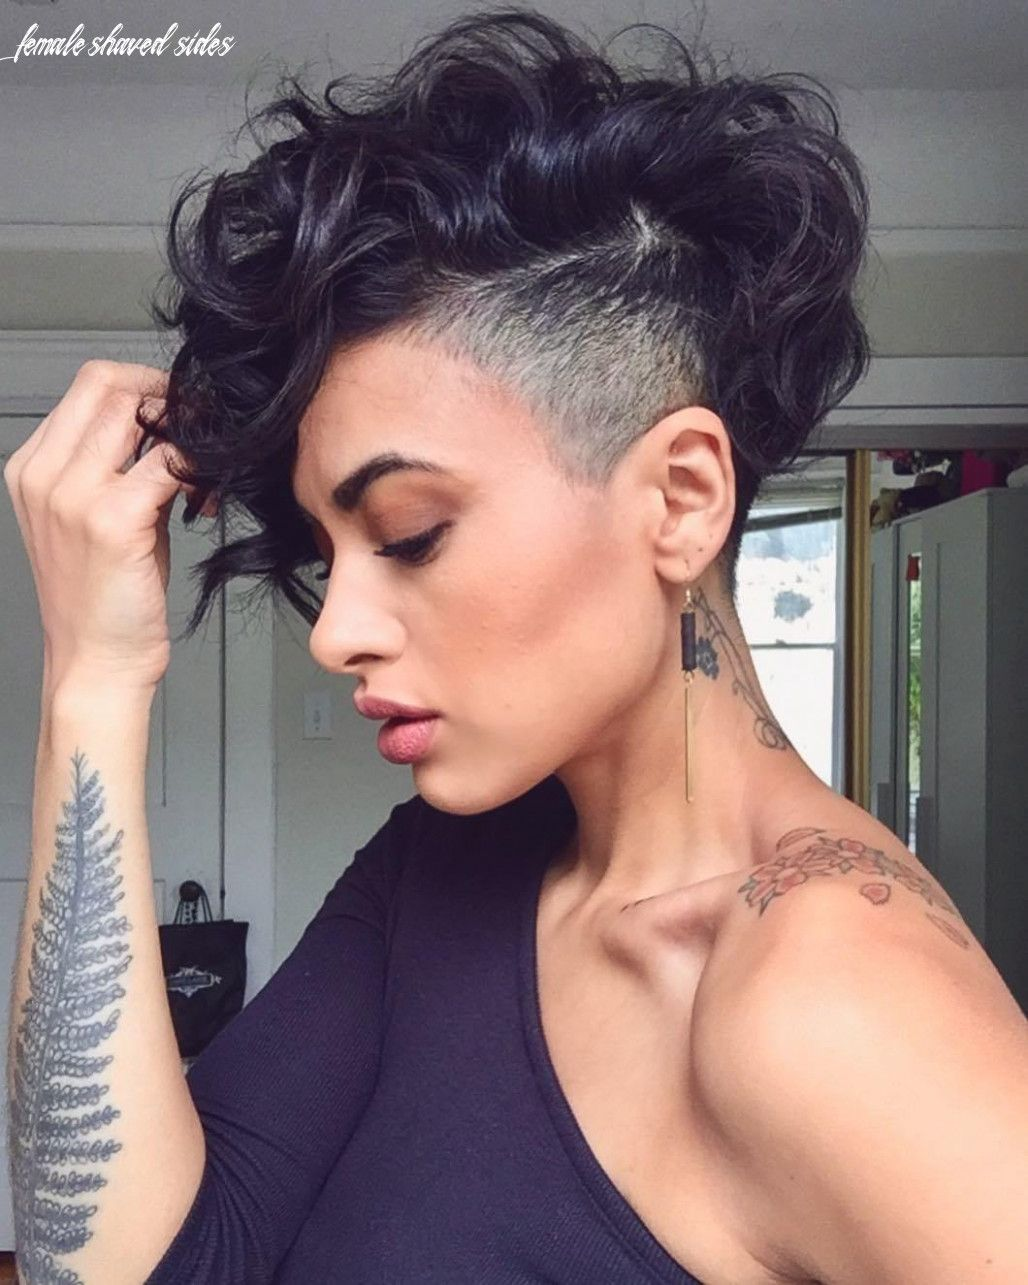 9 Female Shaved Sides In 2020 Short Hair Undercut Curly Pixie Haircuts Hair Styles